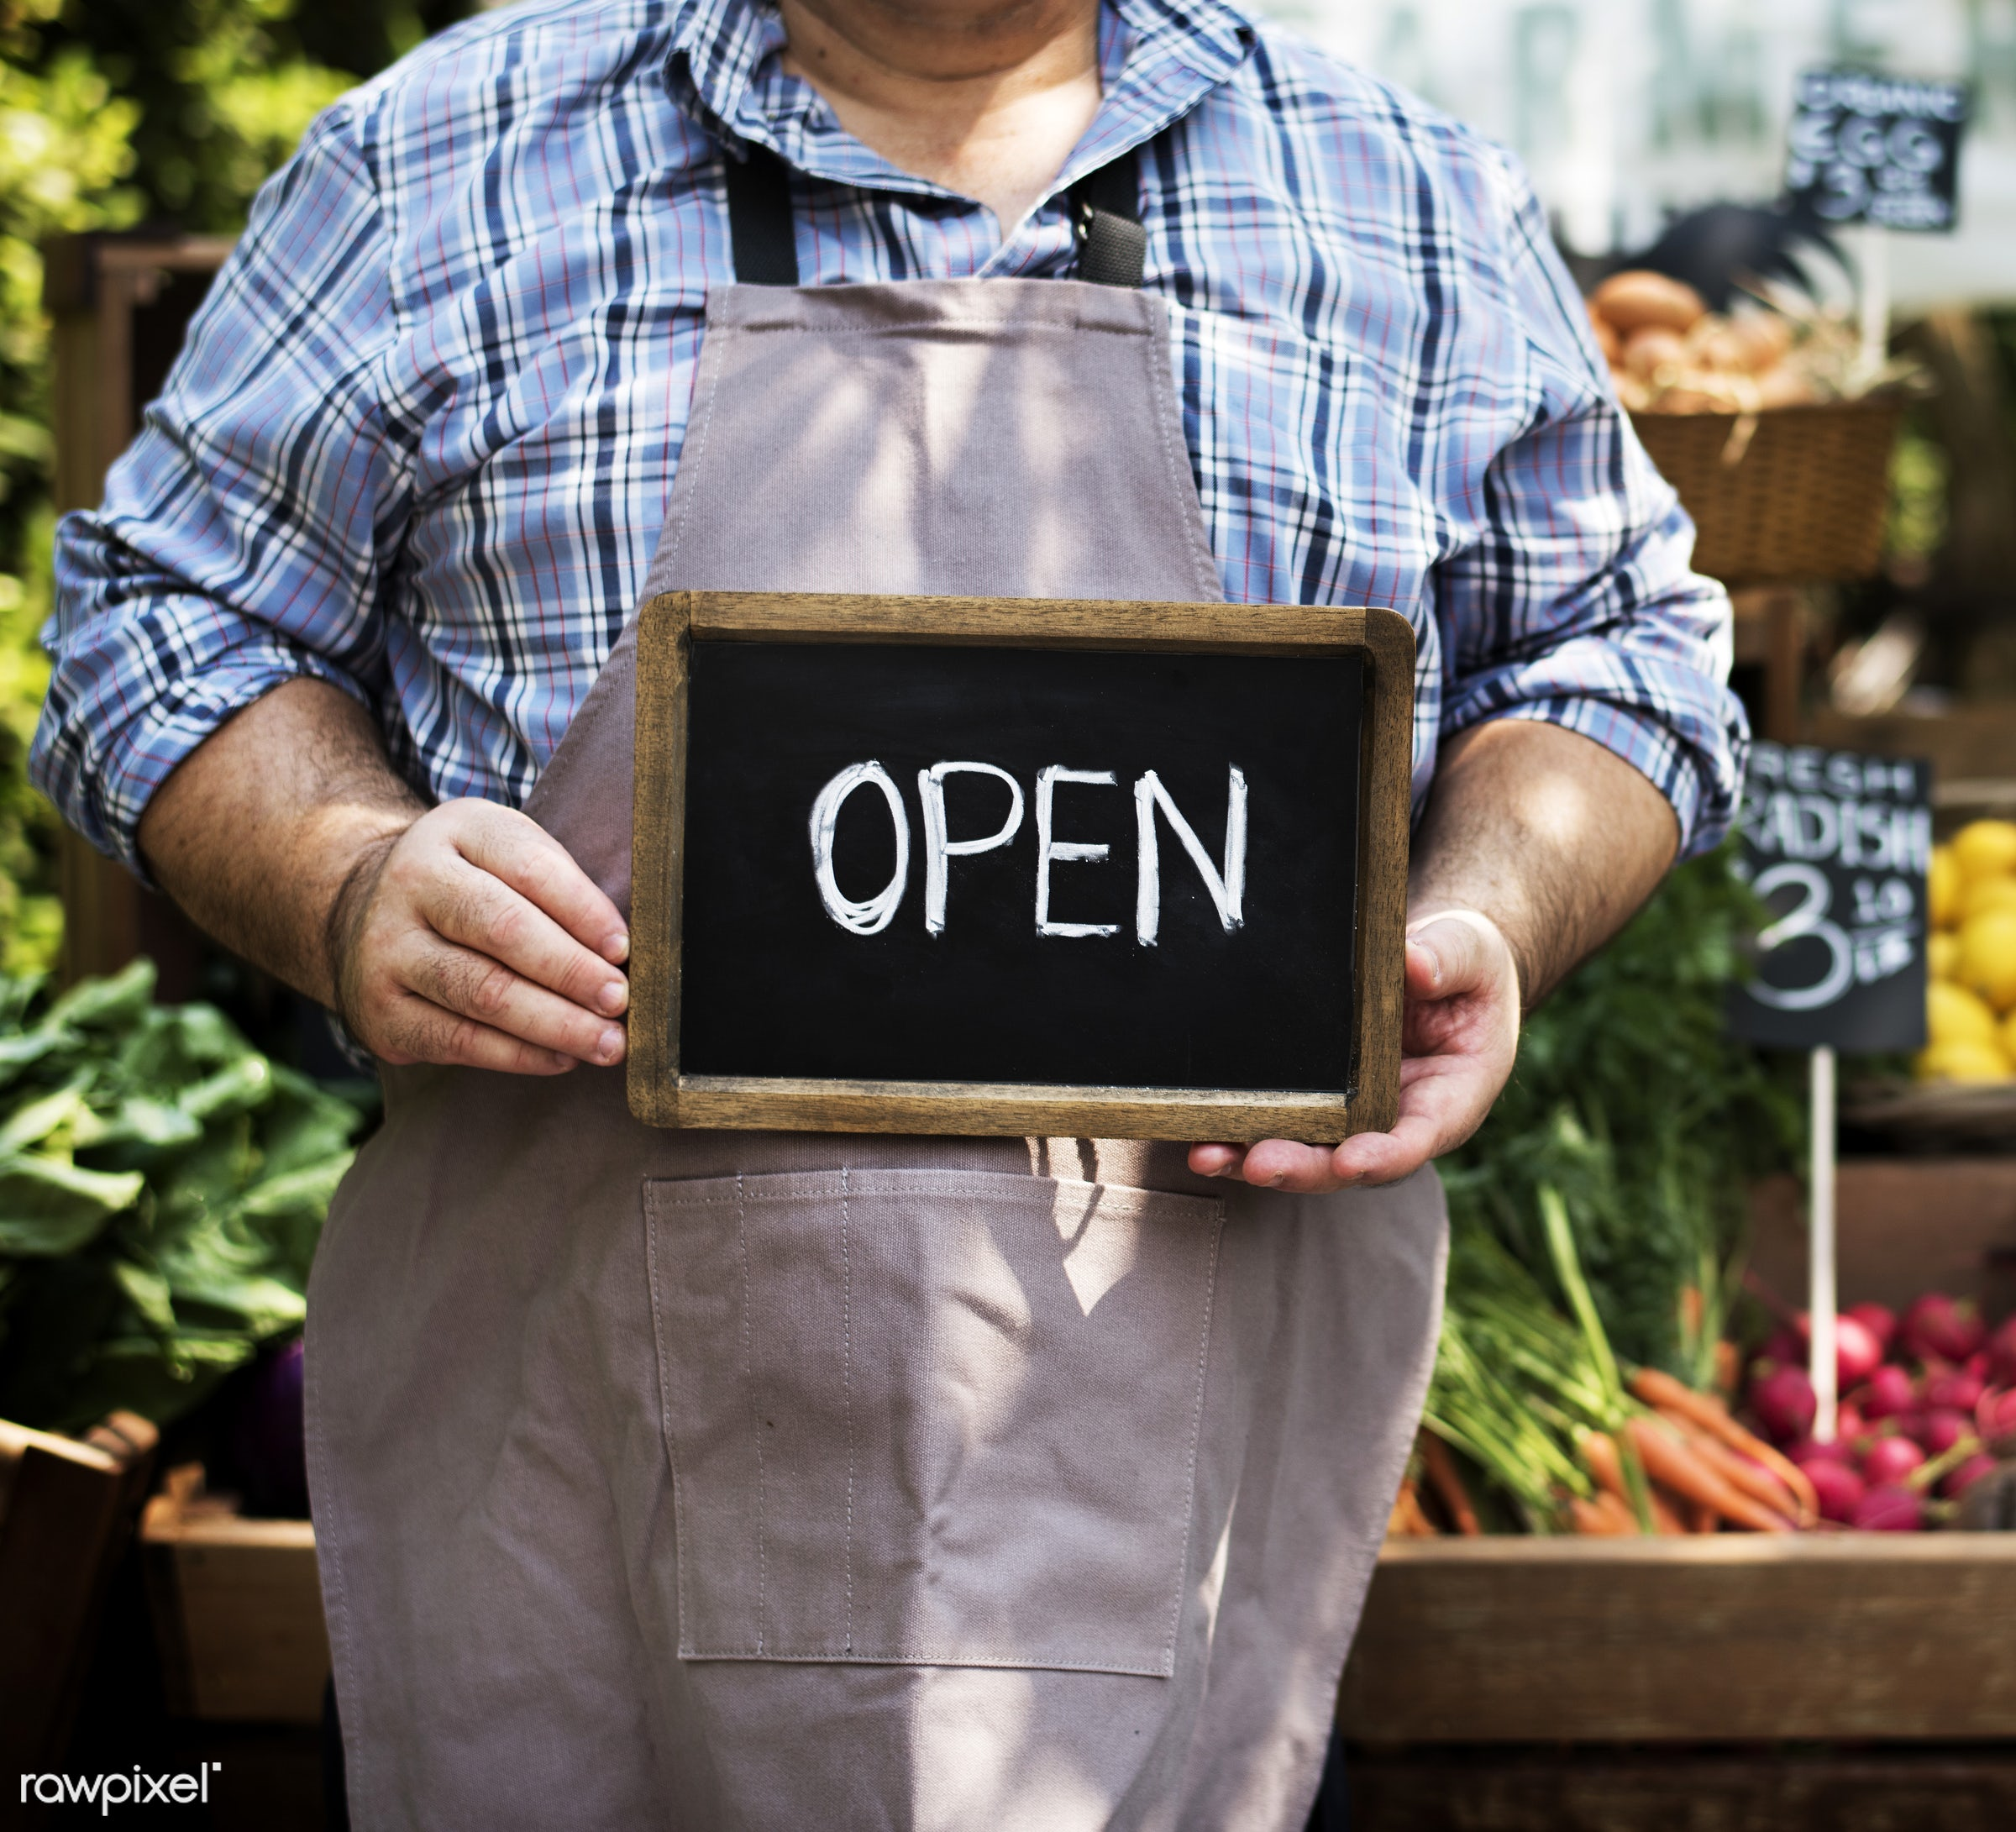 grocery, shop, person, store, stall, holding, consumer, people, open, farmer, lifestyle, choosing, choose, smiling, fruit,...